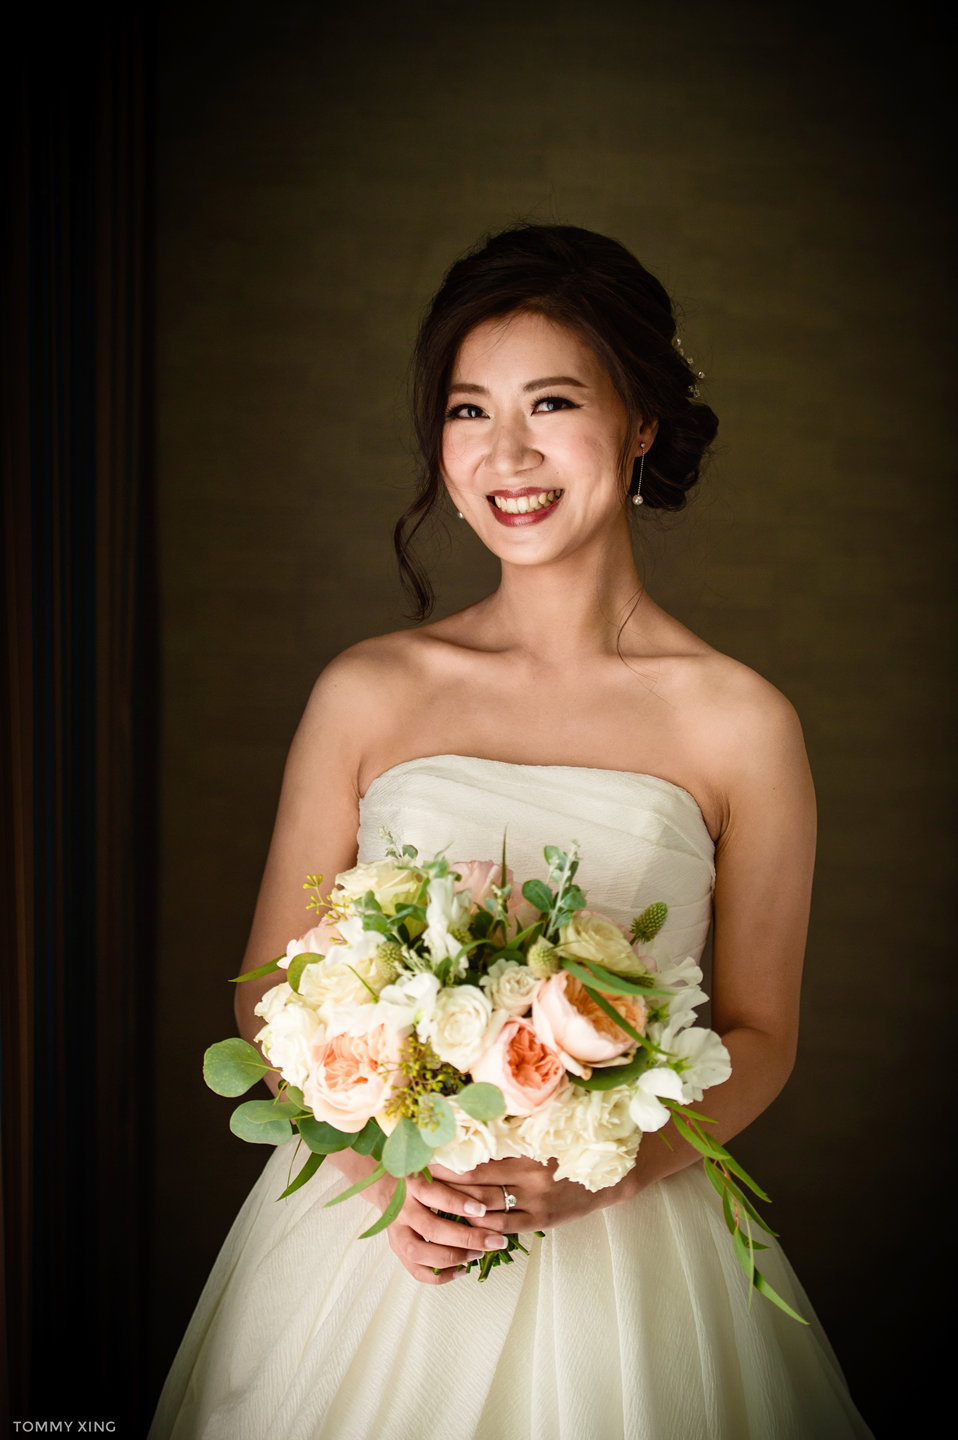 Wayfarers chapel Wedding Photography Ranho Palos Verdes Tommy Xing Photography 洛杉矶玻璃教堂婚礼婚纱照摄影师064.jpg